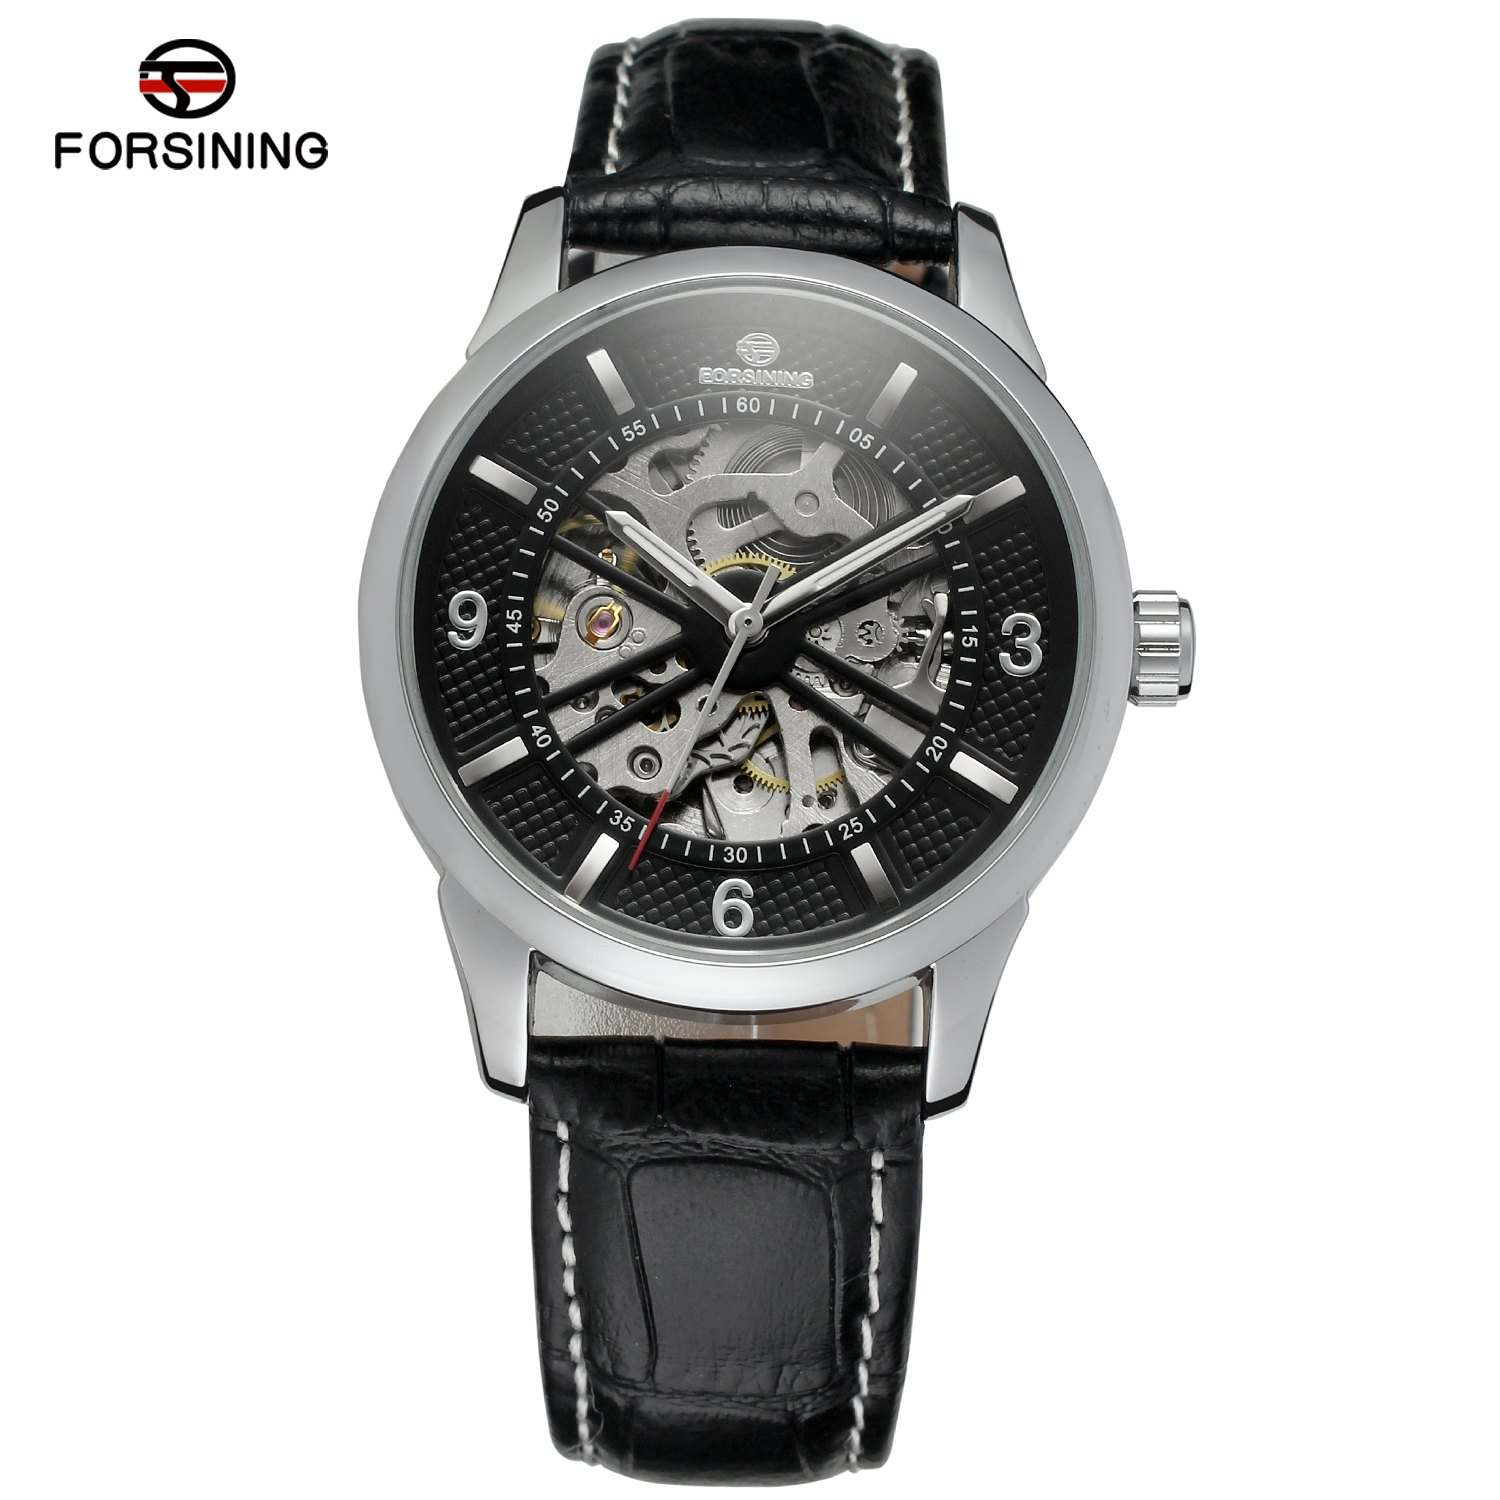 FORSINING Brand Casual Carving Dial Men Skeleton Watches relogio masculino Leather Strap Luxury Mens Mechanical Automatic Watch forsining gold hollow automatic mechanical watches men luxury brand leather strap casual vintage skeleton watch clock relogio